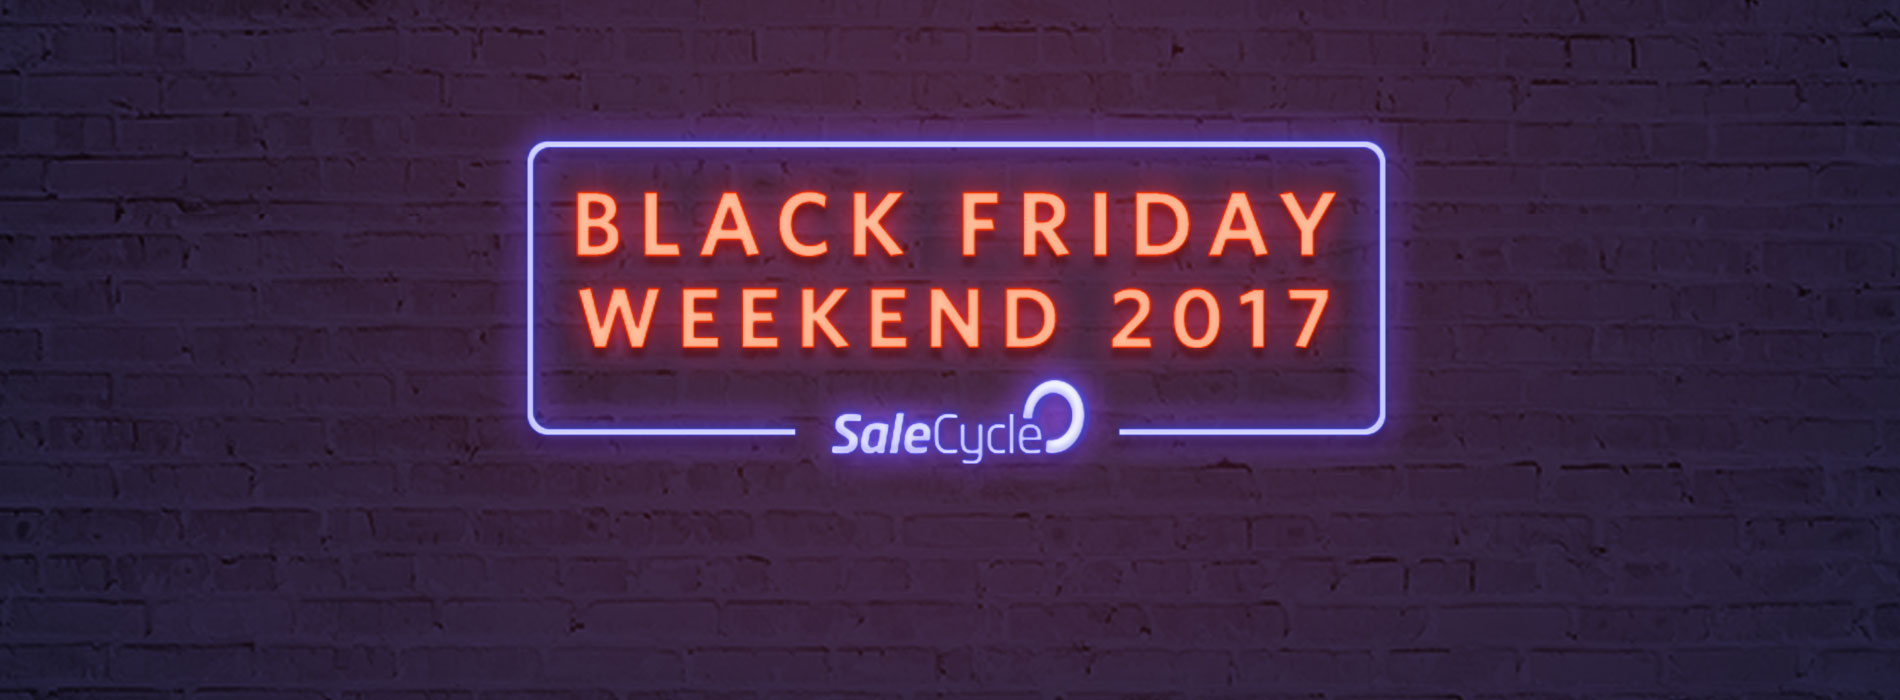 [Infographic] Black Friday Weekend 2017 Stats